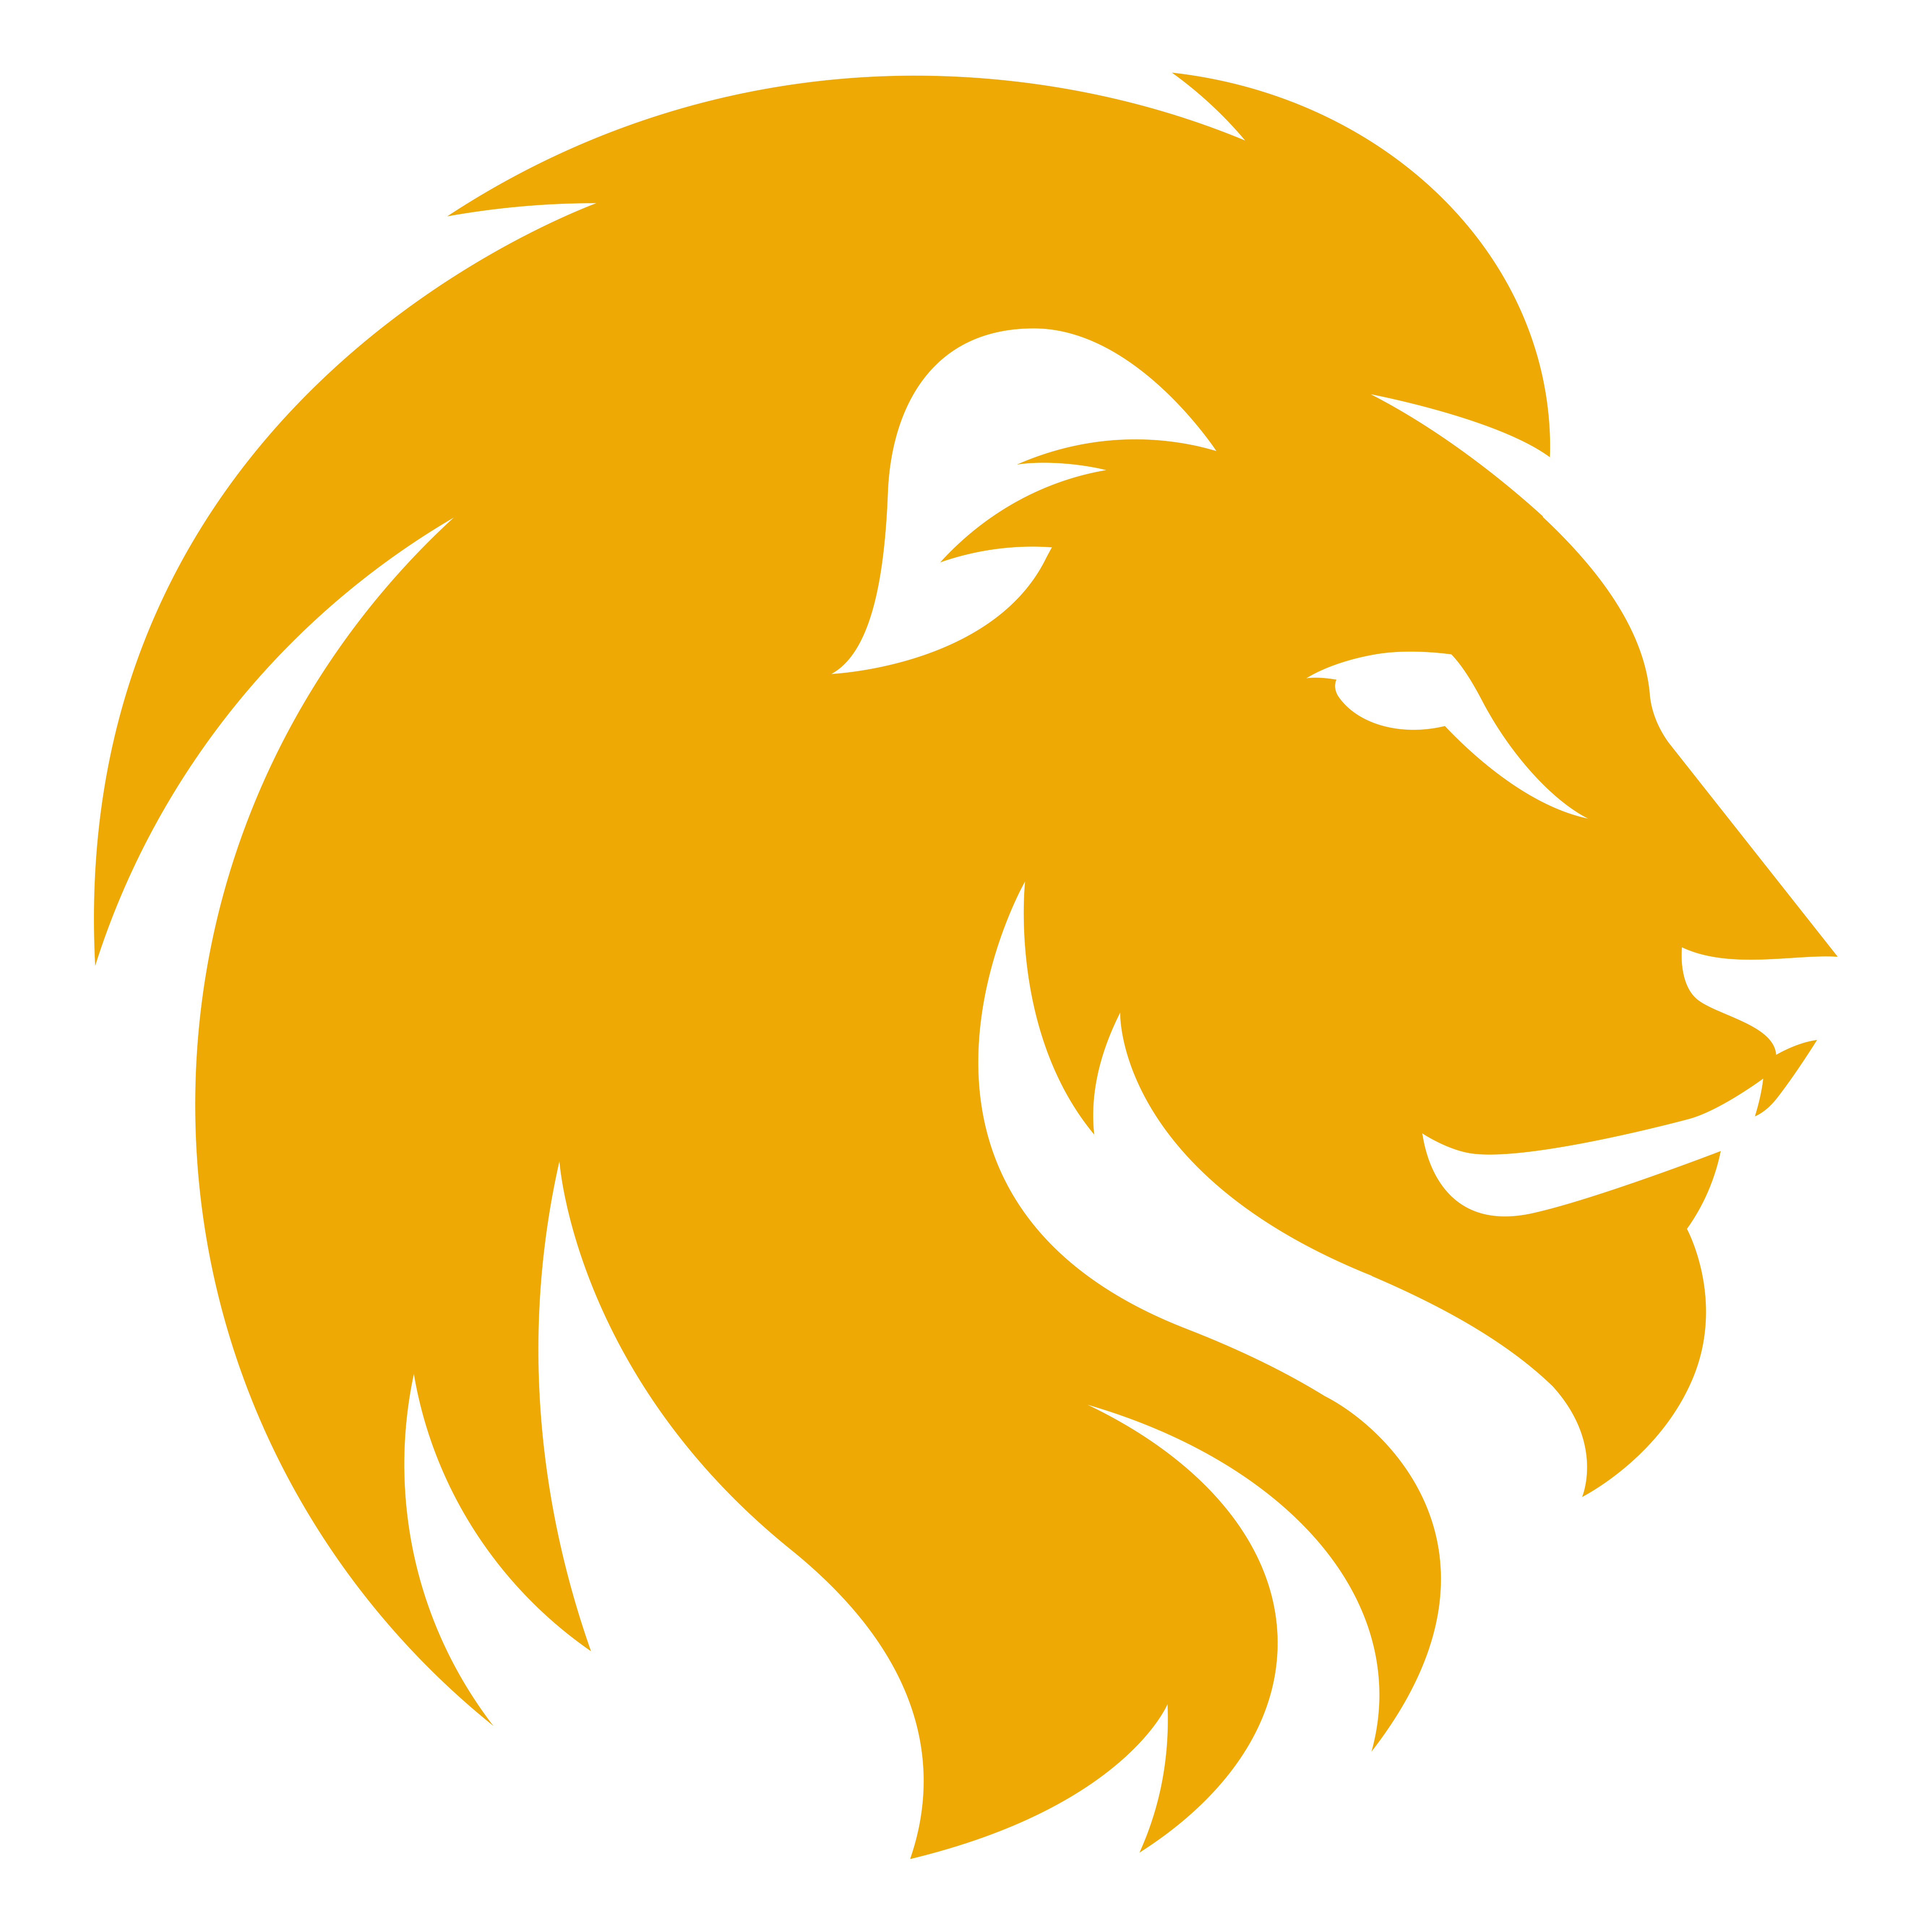 Lion PNG Images Transparent Free Download